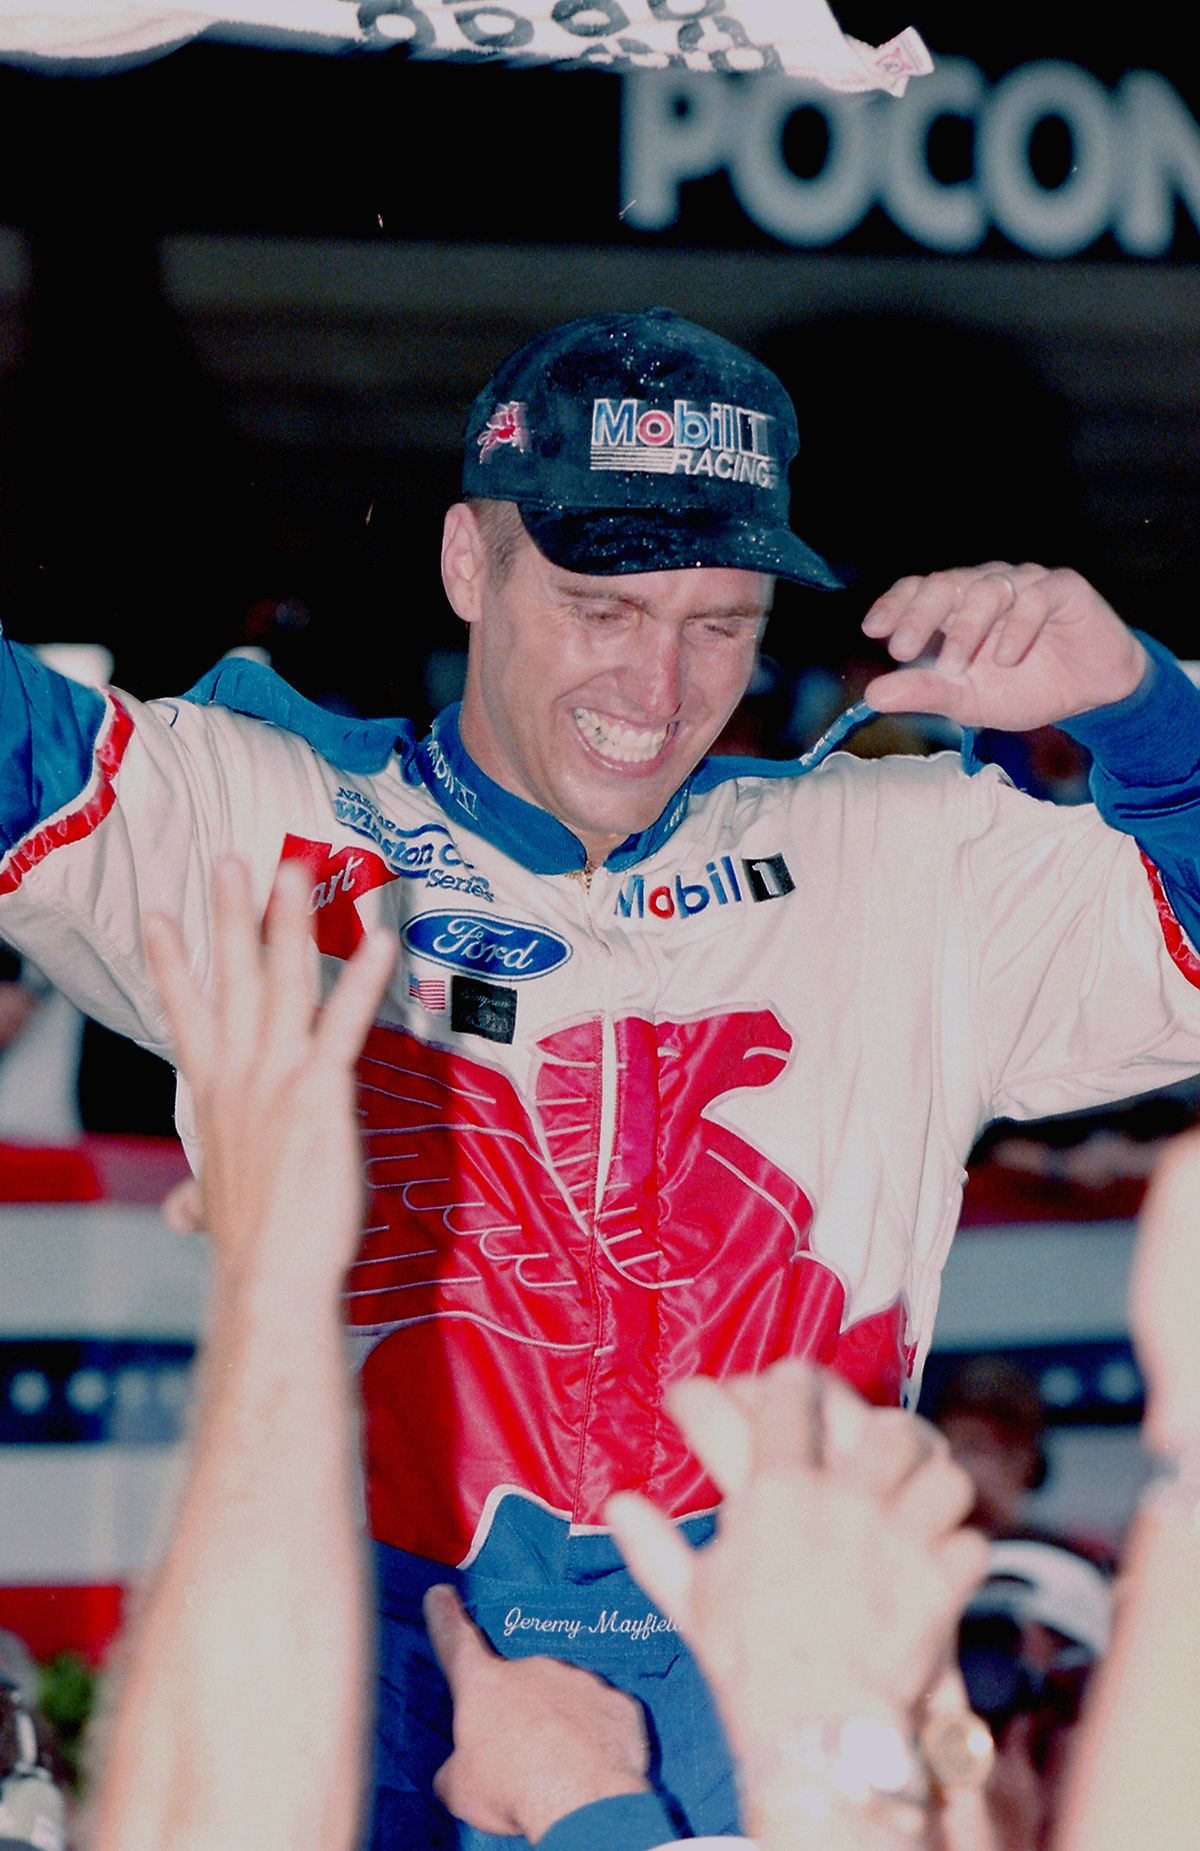 Jeremy Mayfield Wikipedia